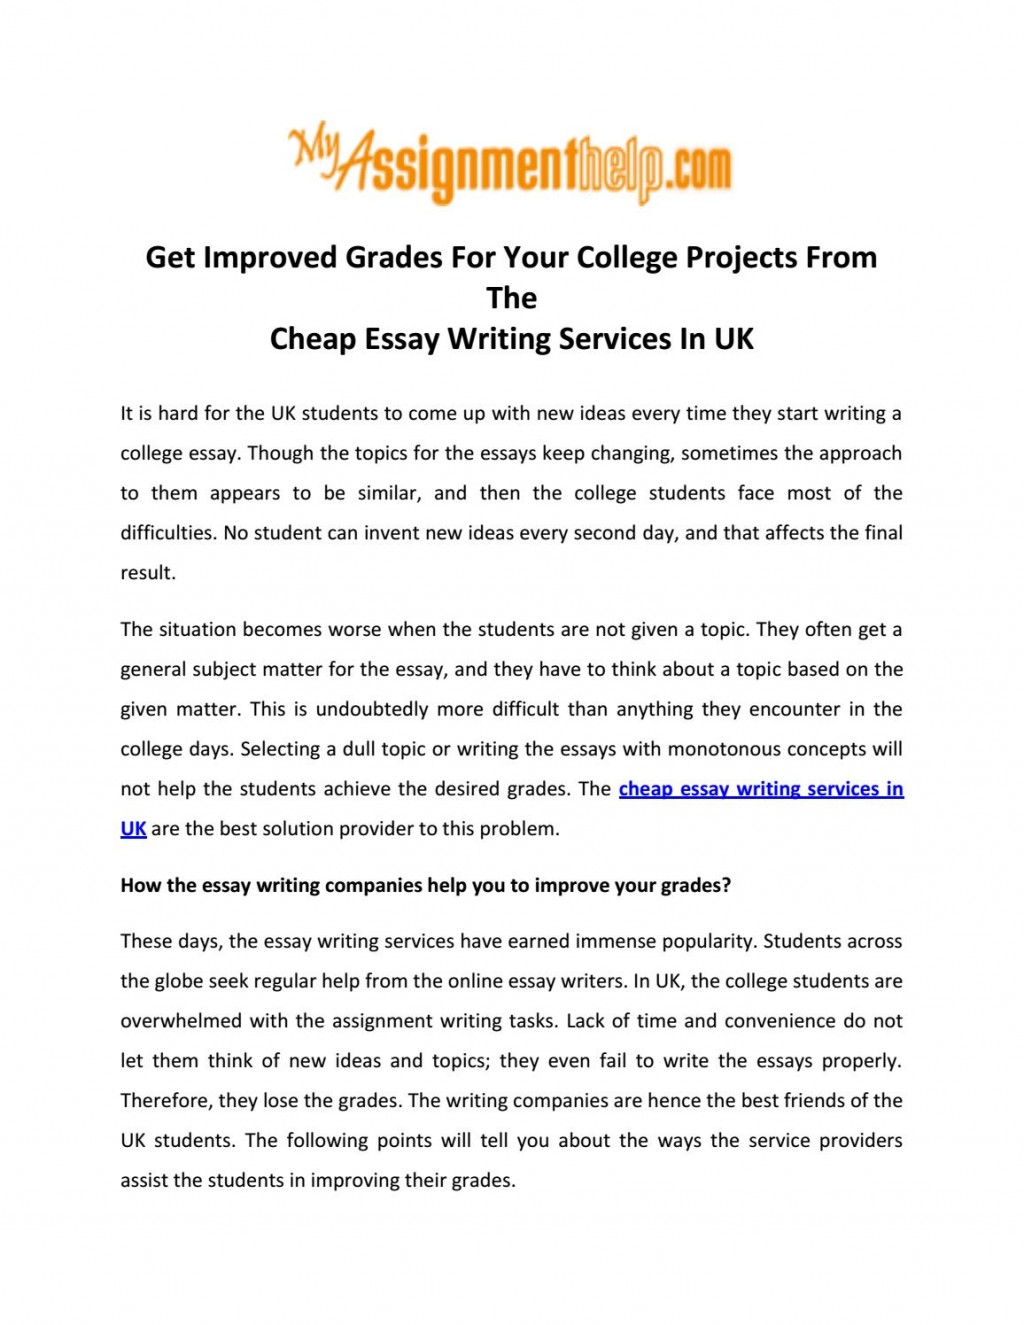 011 Page 1 Essay Example Cheap Writing Unusual Service Review Services Uk Australia Large